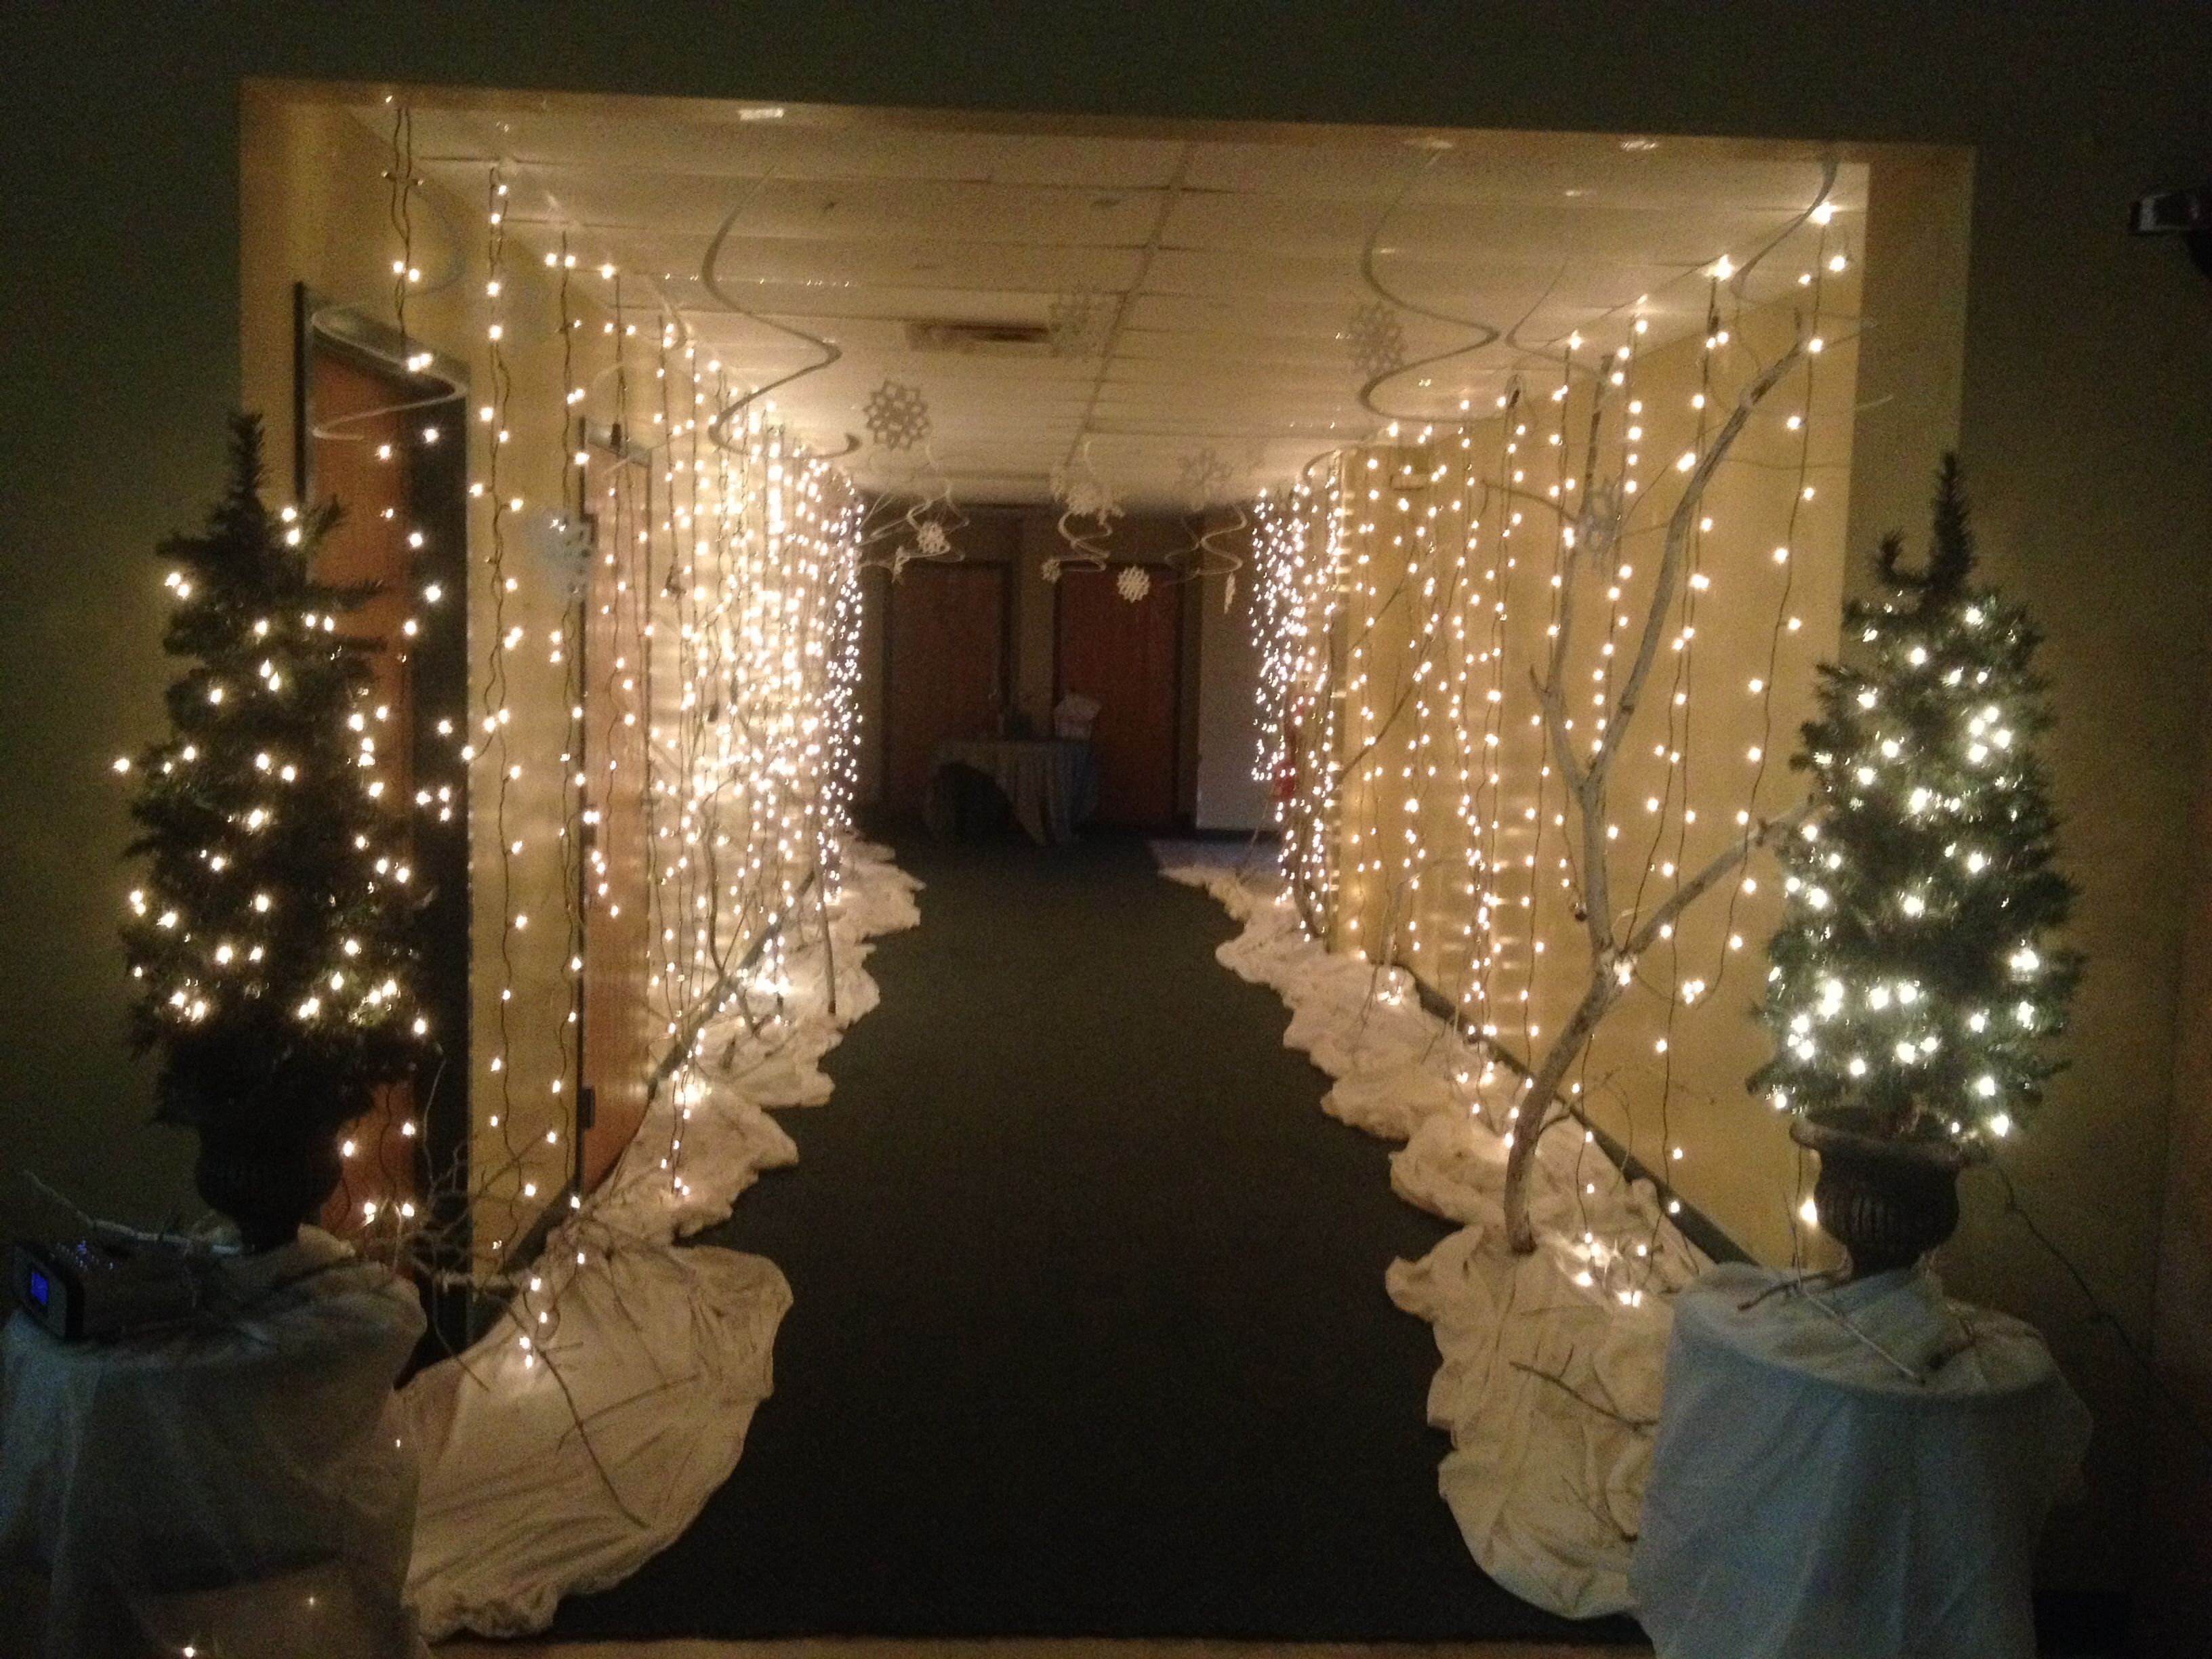 lighting ideas to light up your modern hallway - Winter Wonderland Christmas Decorating Ideas